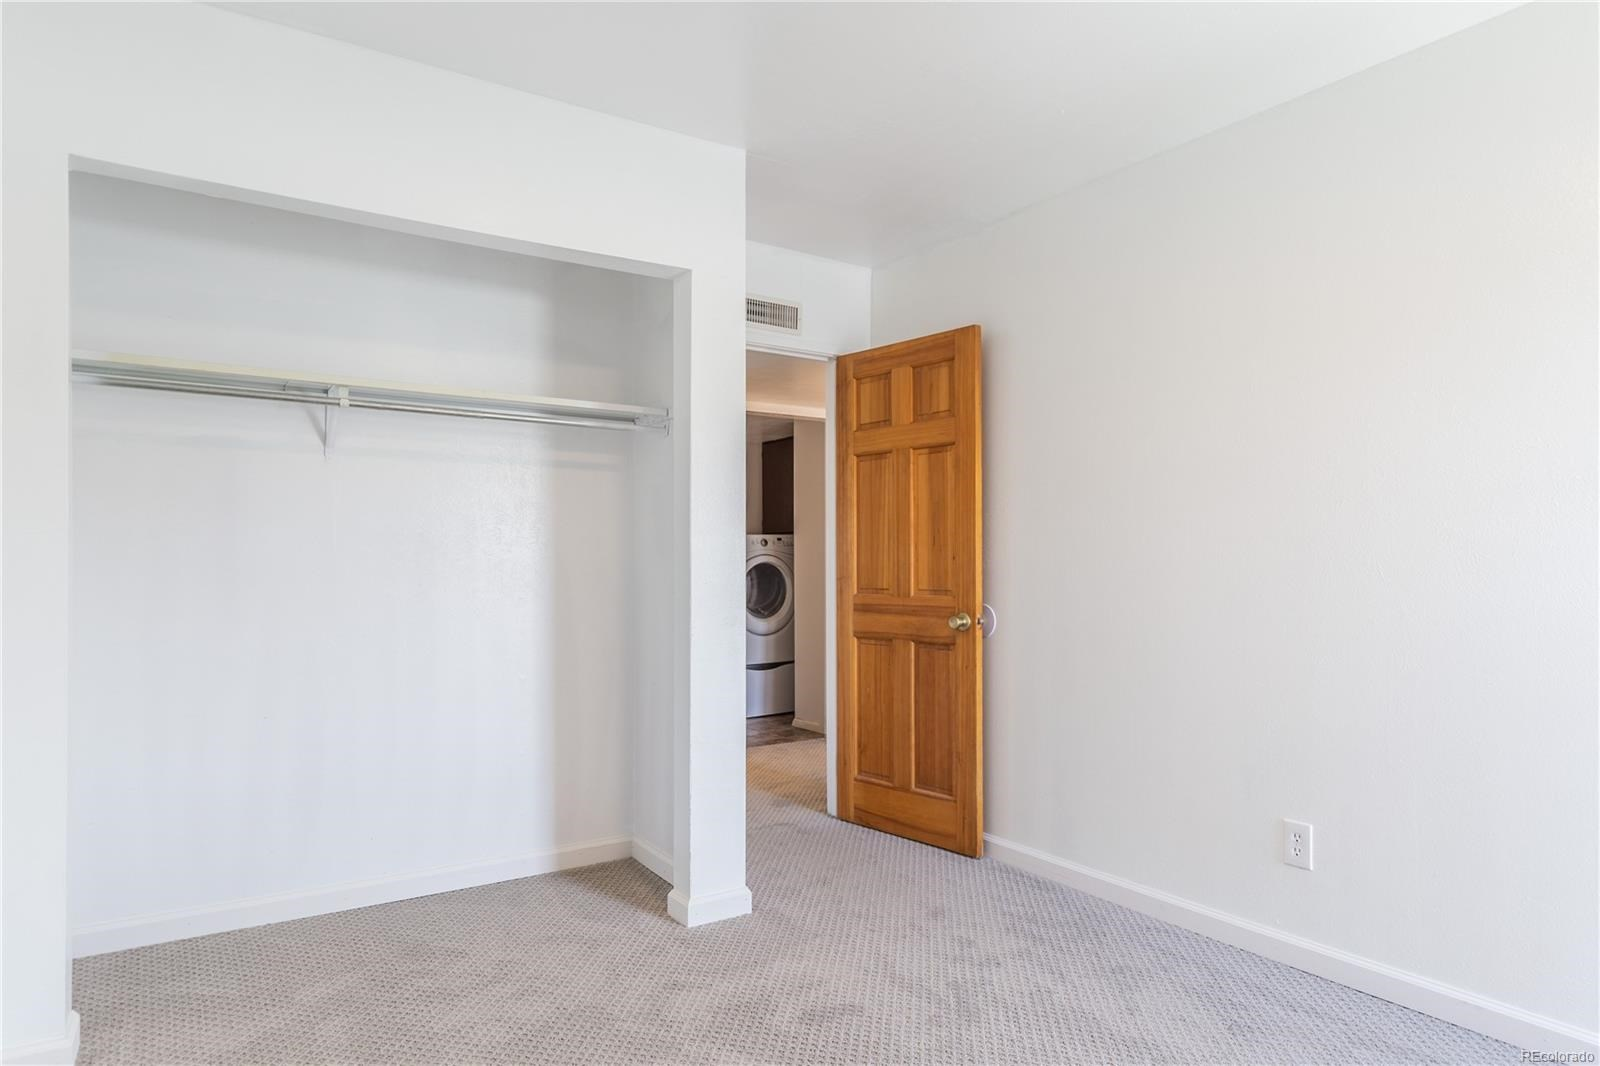 MLS# 7143166 - 8 - 3663 S Sheridan Boulevard #I16, Denver, CO 80235